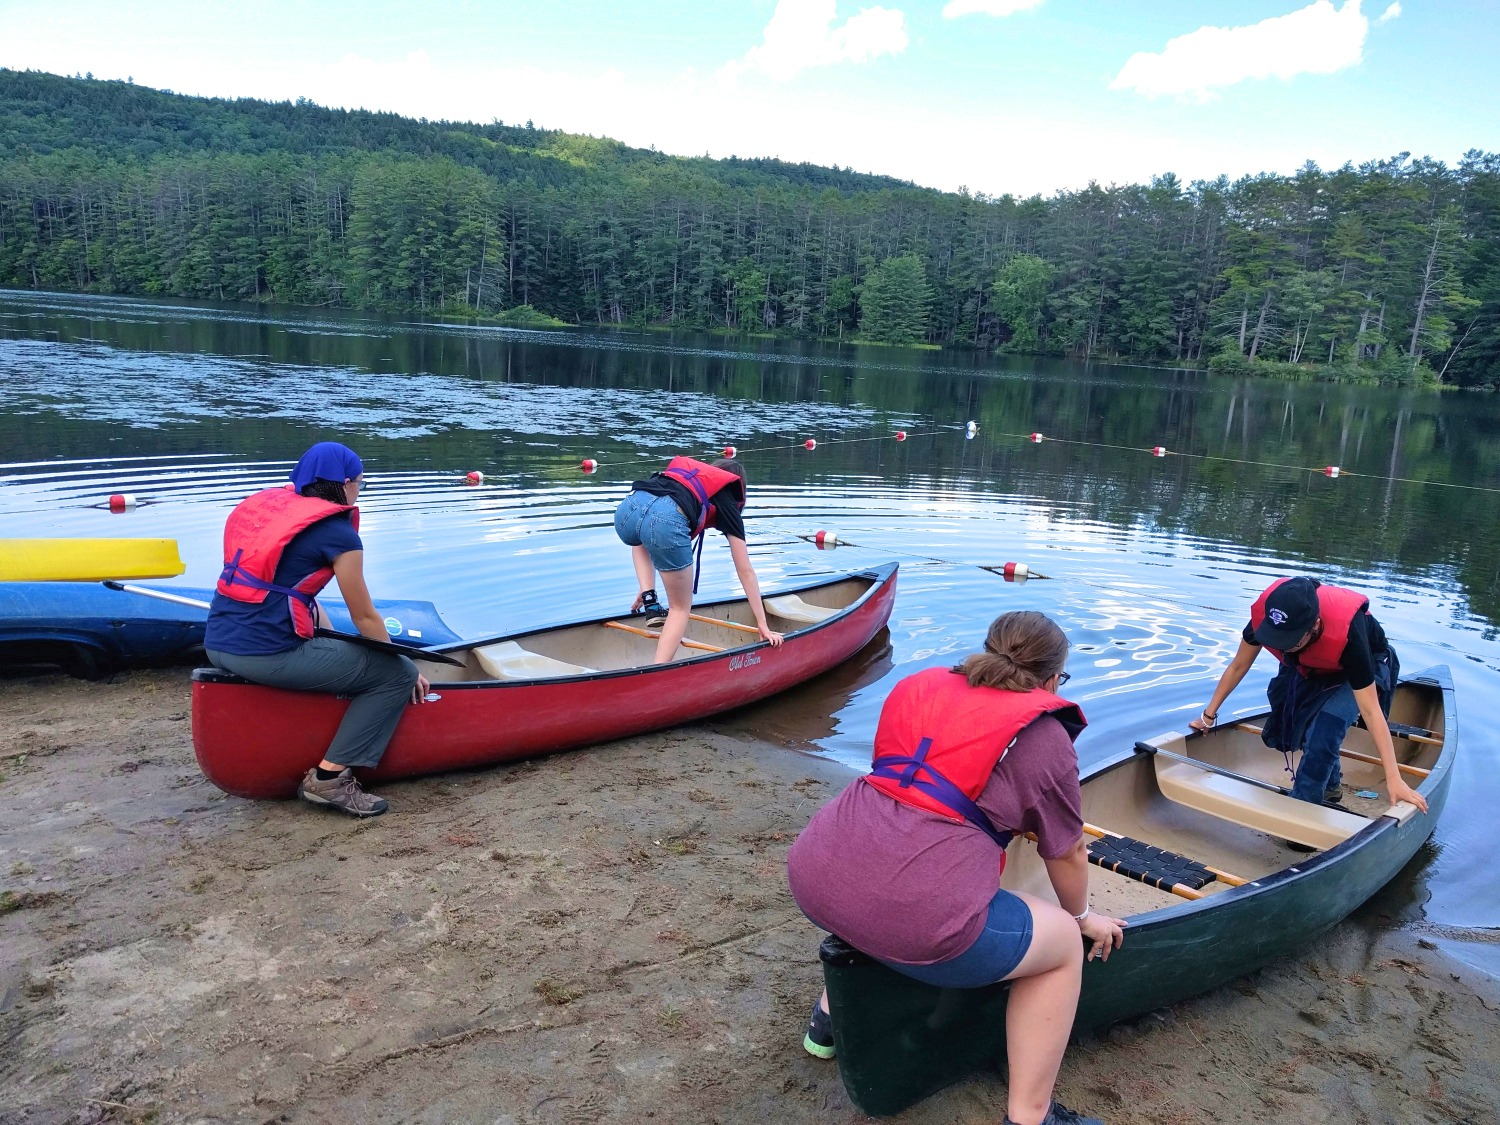 Four campers practice getting in and out of canoes on the lake at Pack Forest